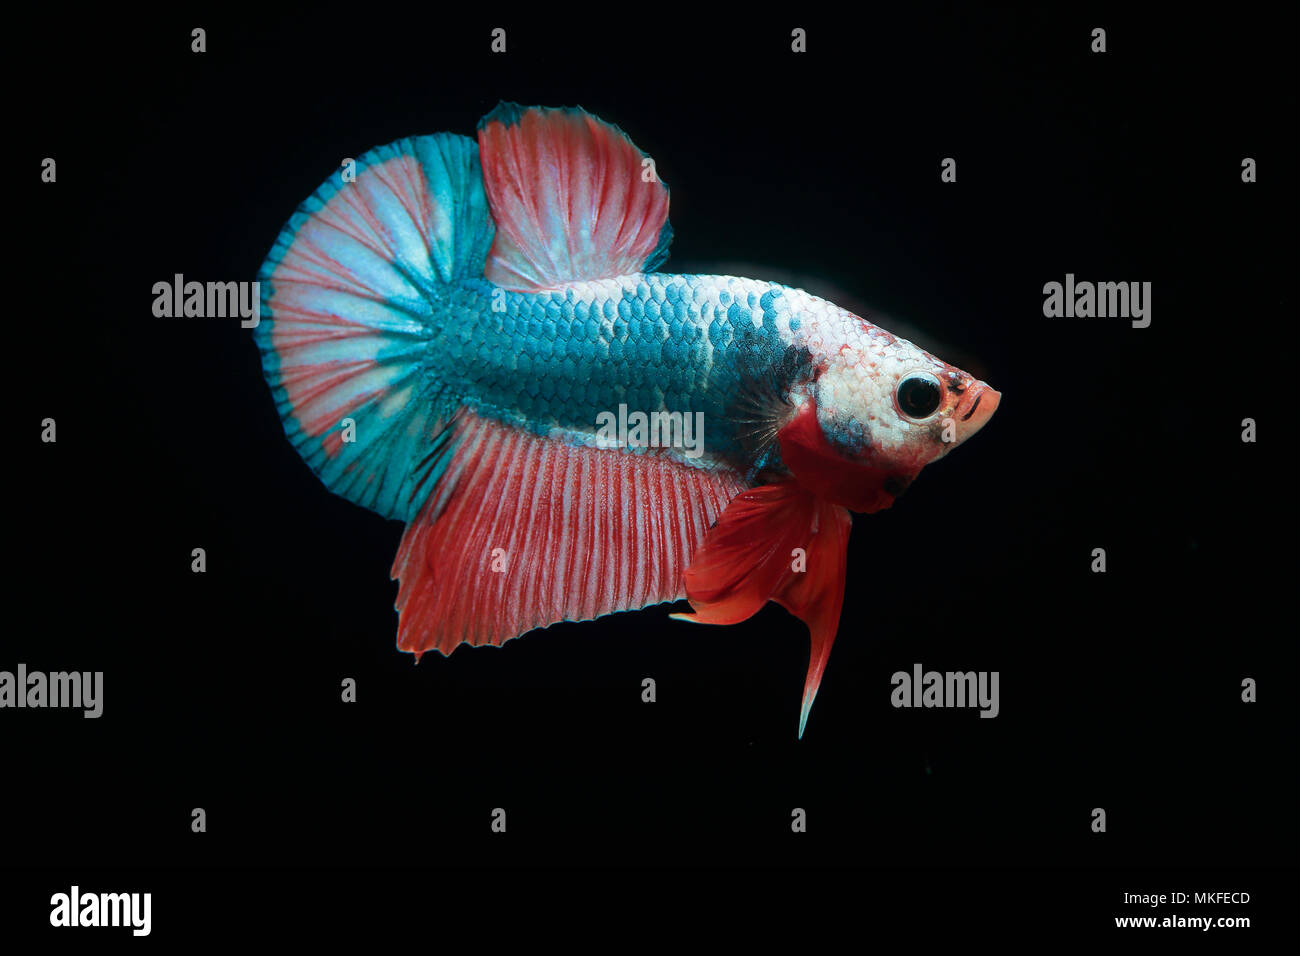 Betta 'Plakat Fancy' Stock Photo